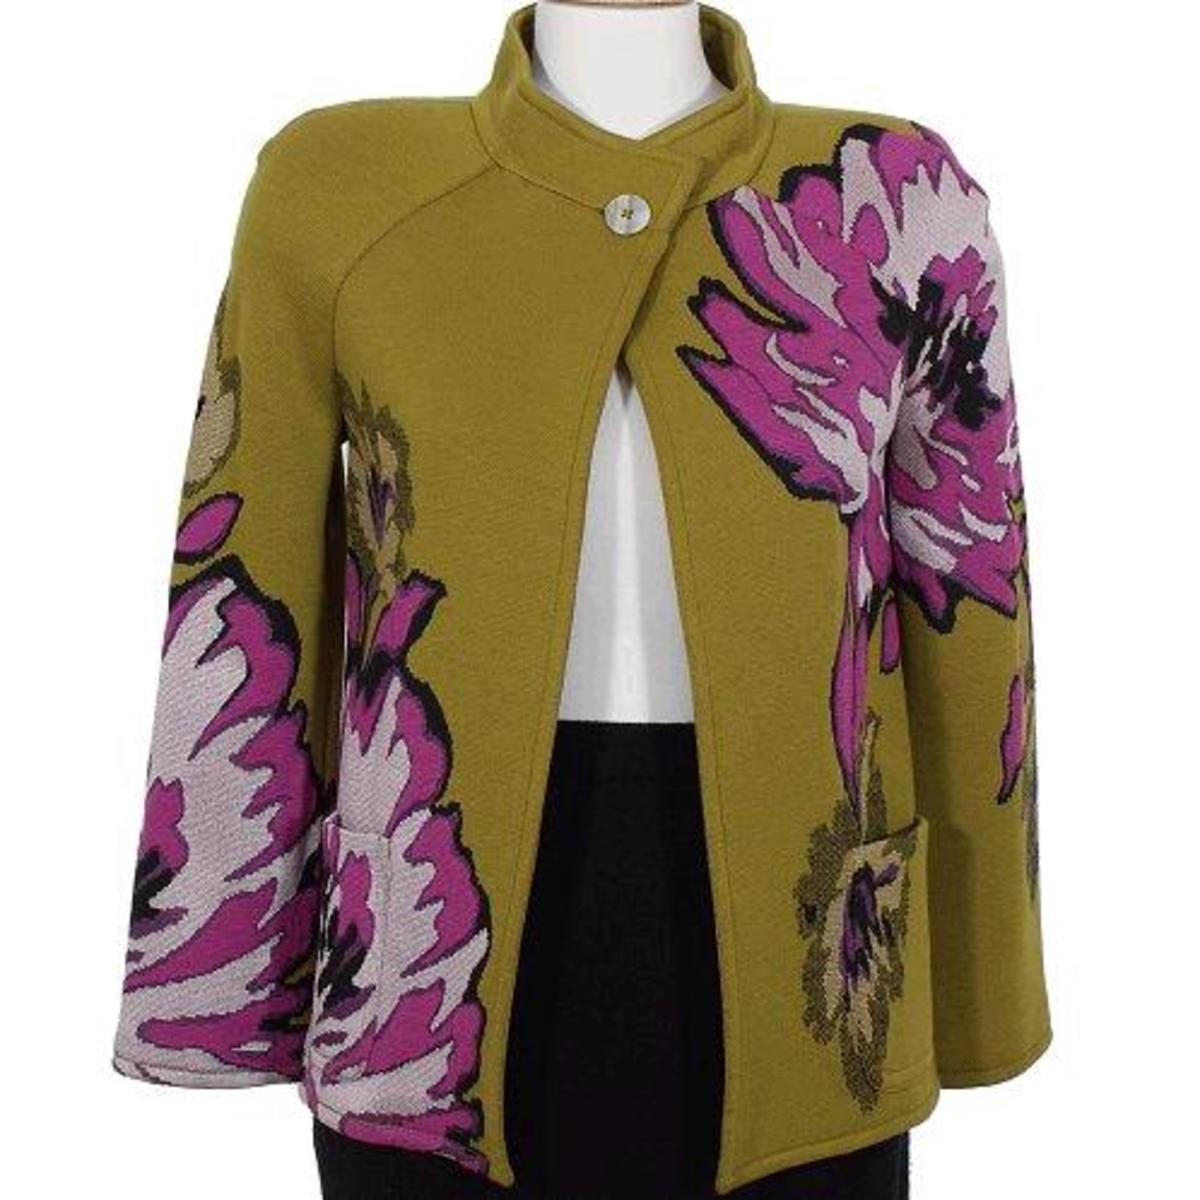 St John colorful jacket / cardigan in green and pink large overscale floral